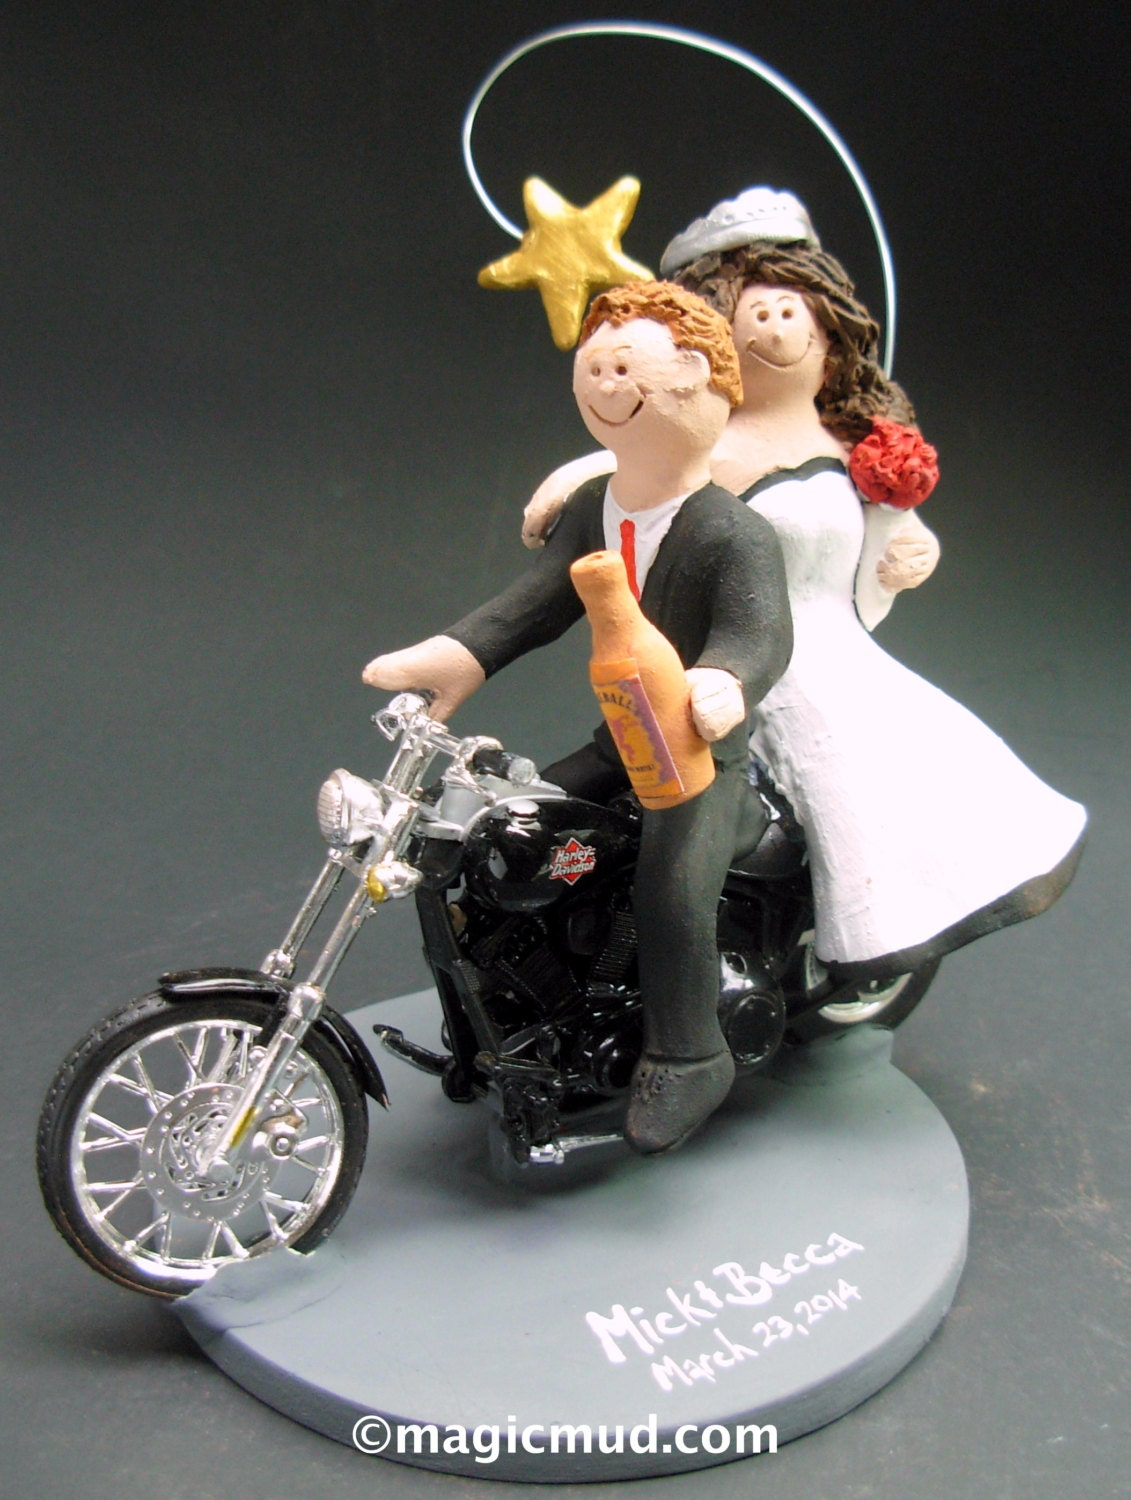 Couple On Harley Davidson Sportster Wedding Cake Topper Bikers Wedding Anniversary Gift Caketopper For Motorcycle Bride